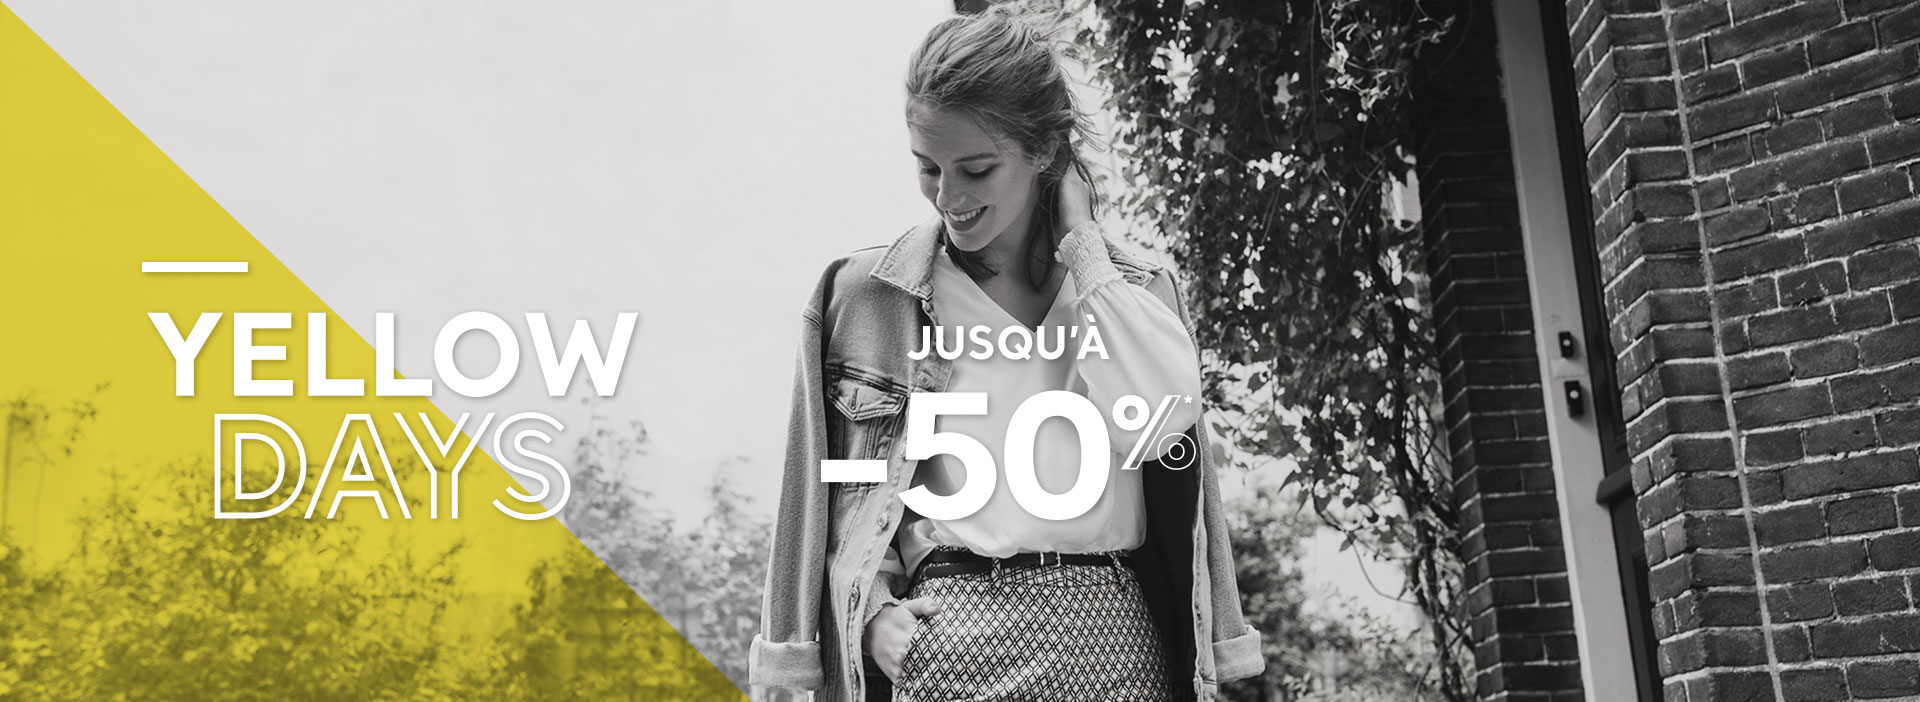 YELLOW DAYS : Jusqu'à -50%